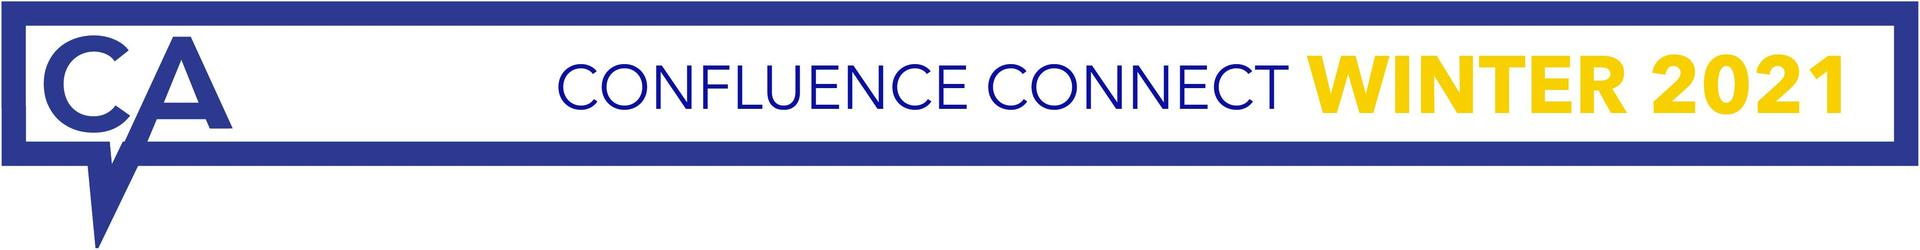 Confluence Connect Winter 2021